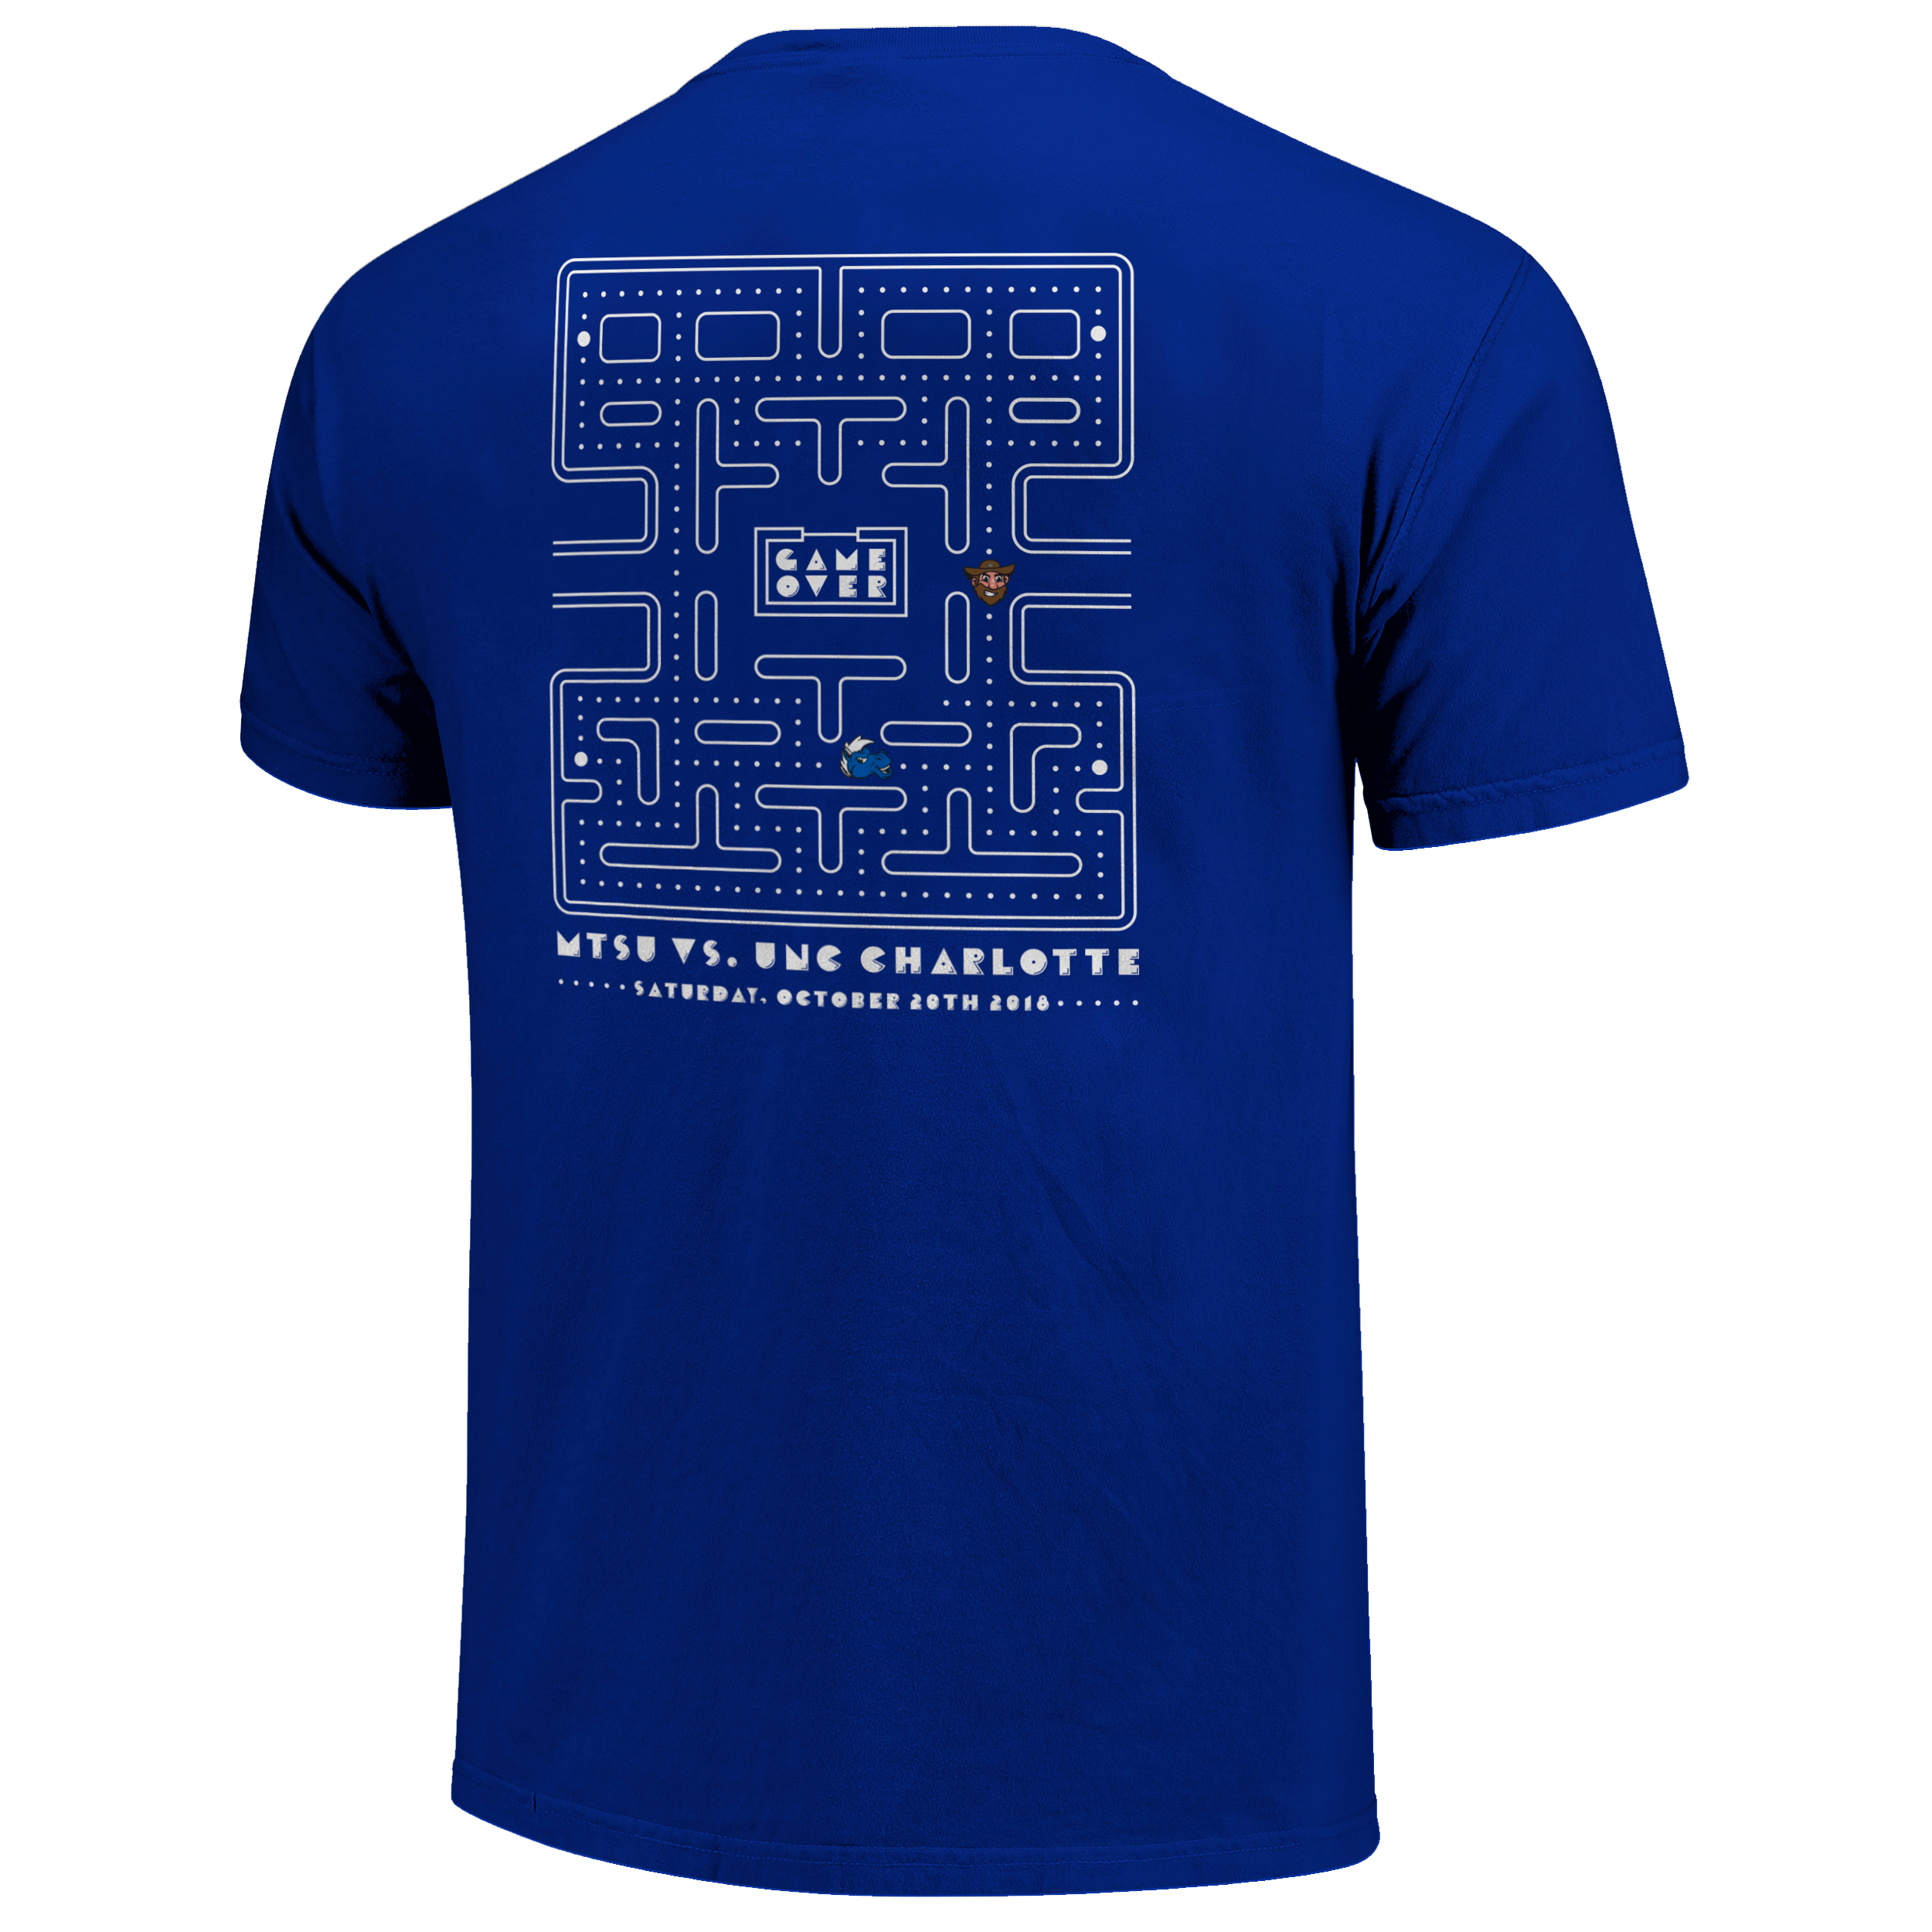 MTSU 2018 Homecoming Tshirt